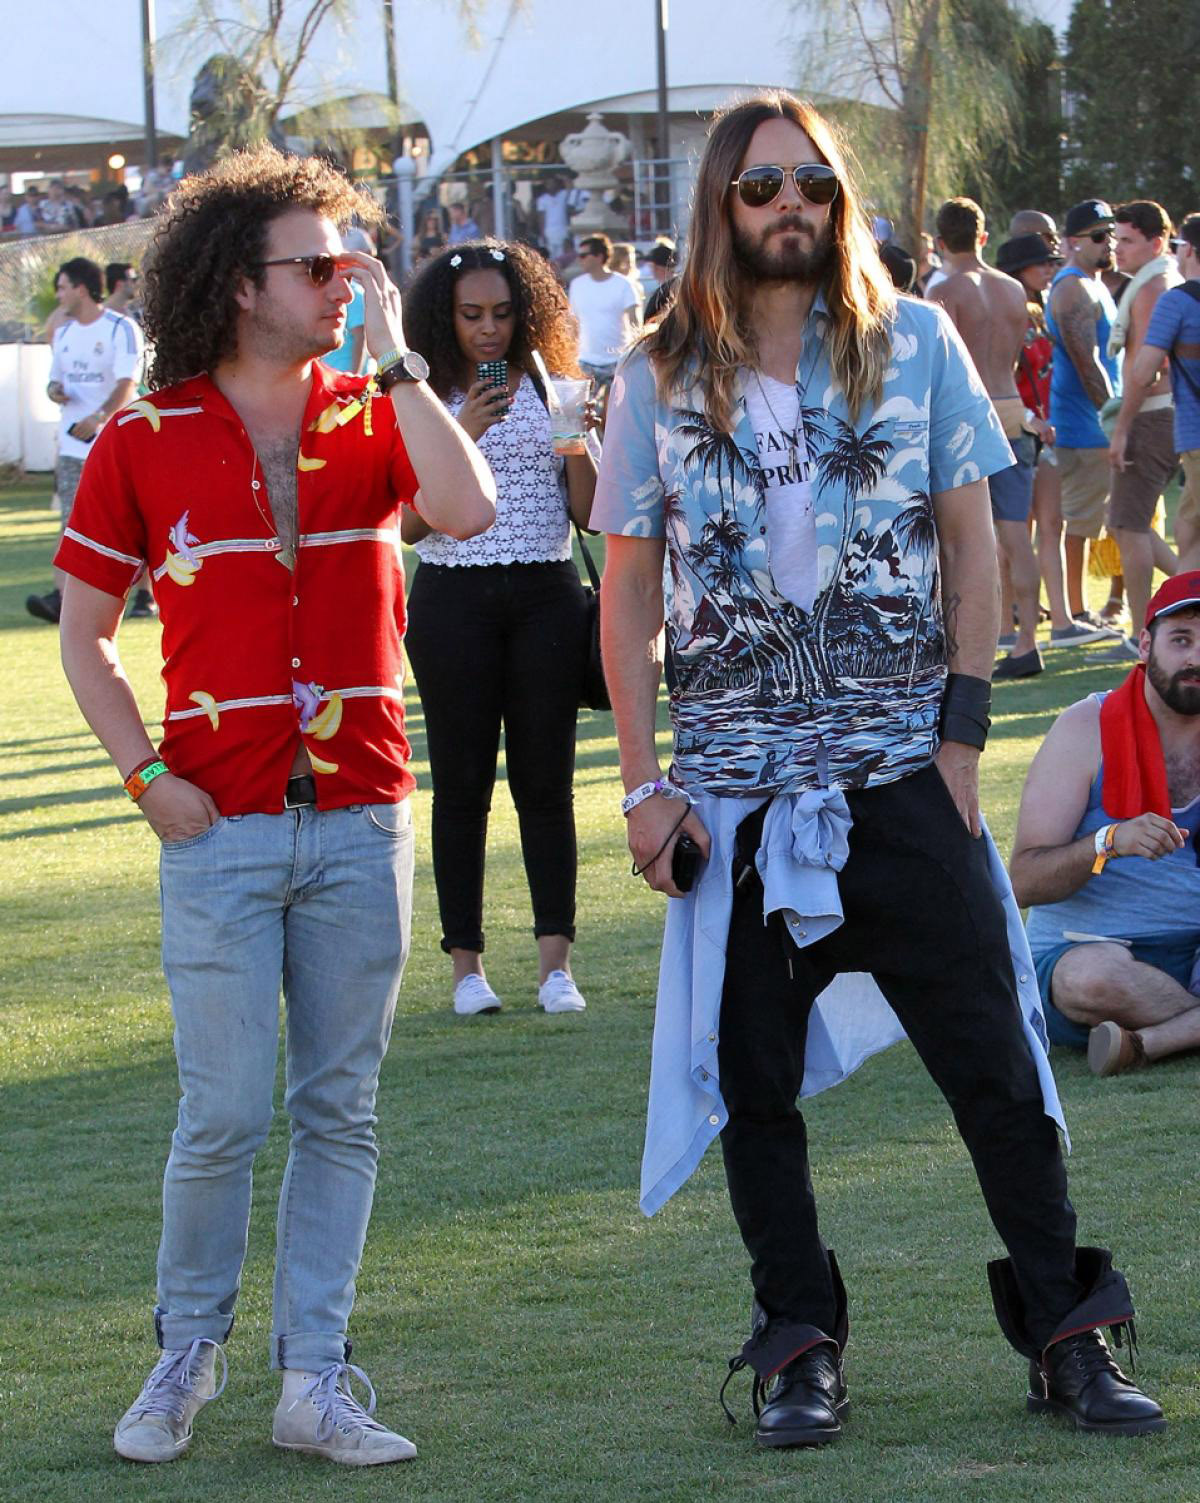 jared-leto-coachella-2014-celebrity-fashion